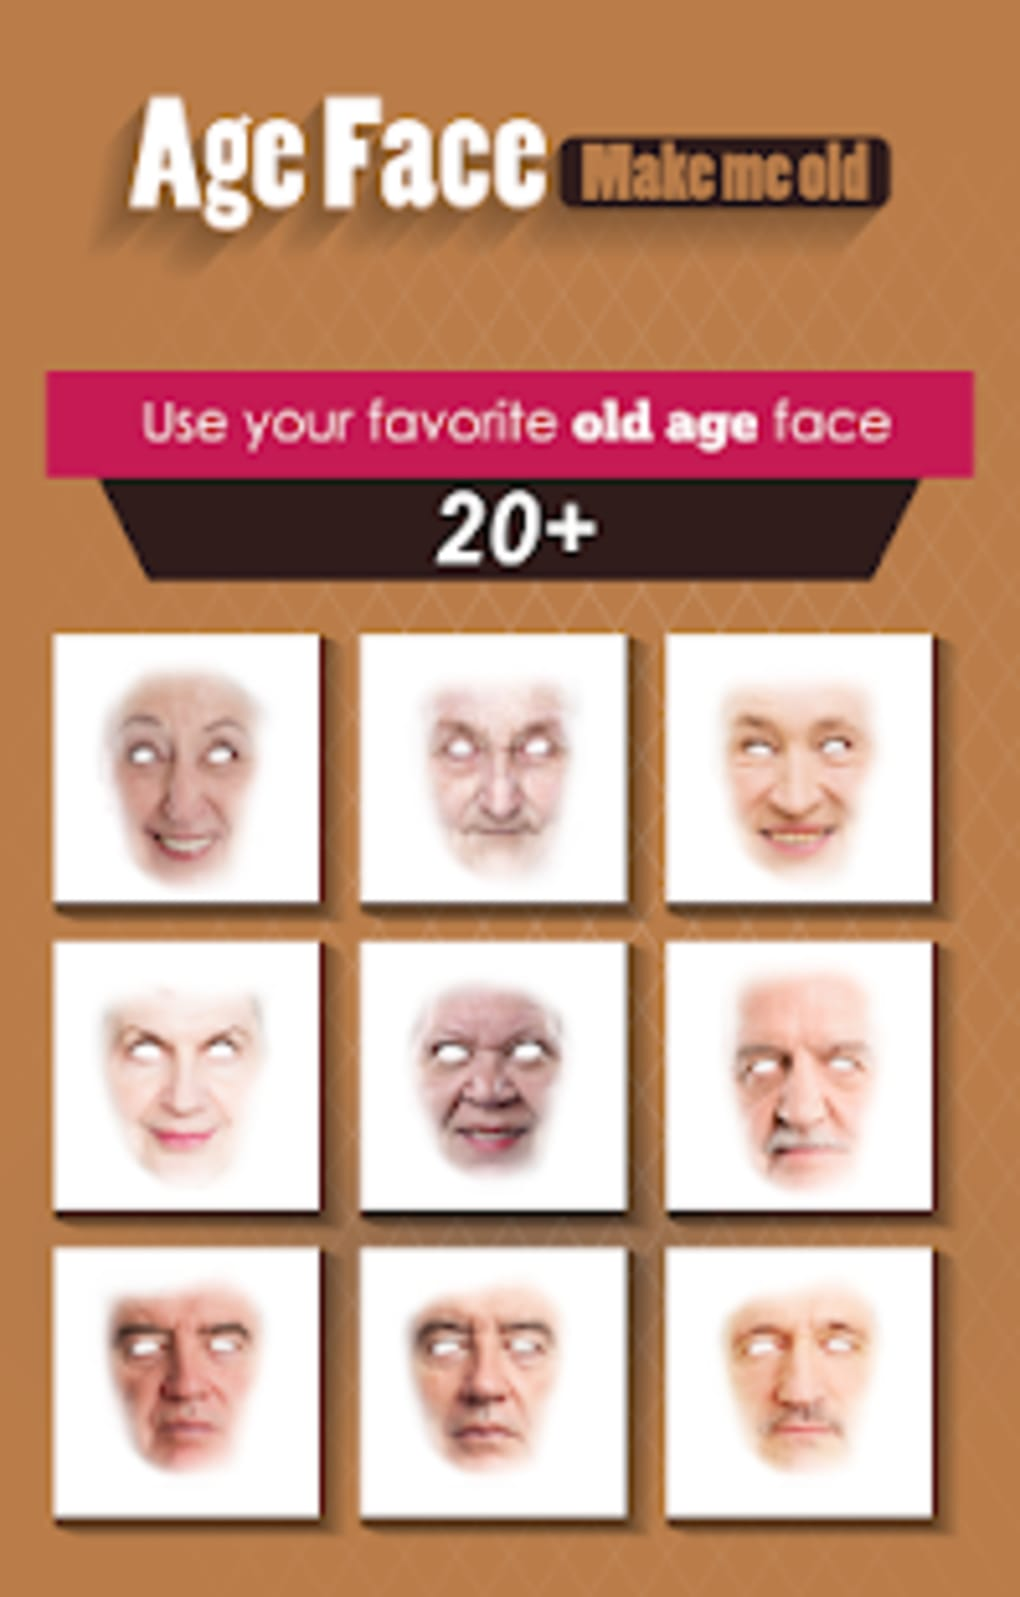 Age Face - Make me OLD for Android - Download